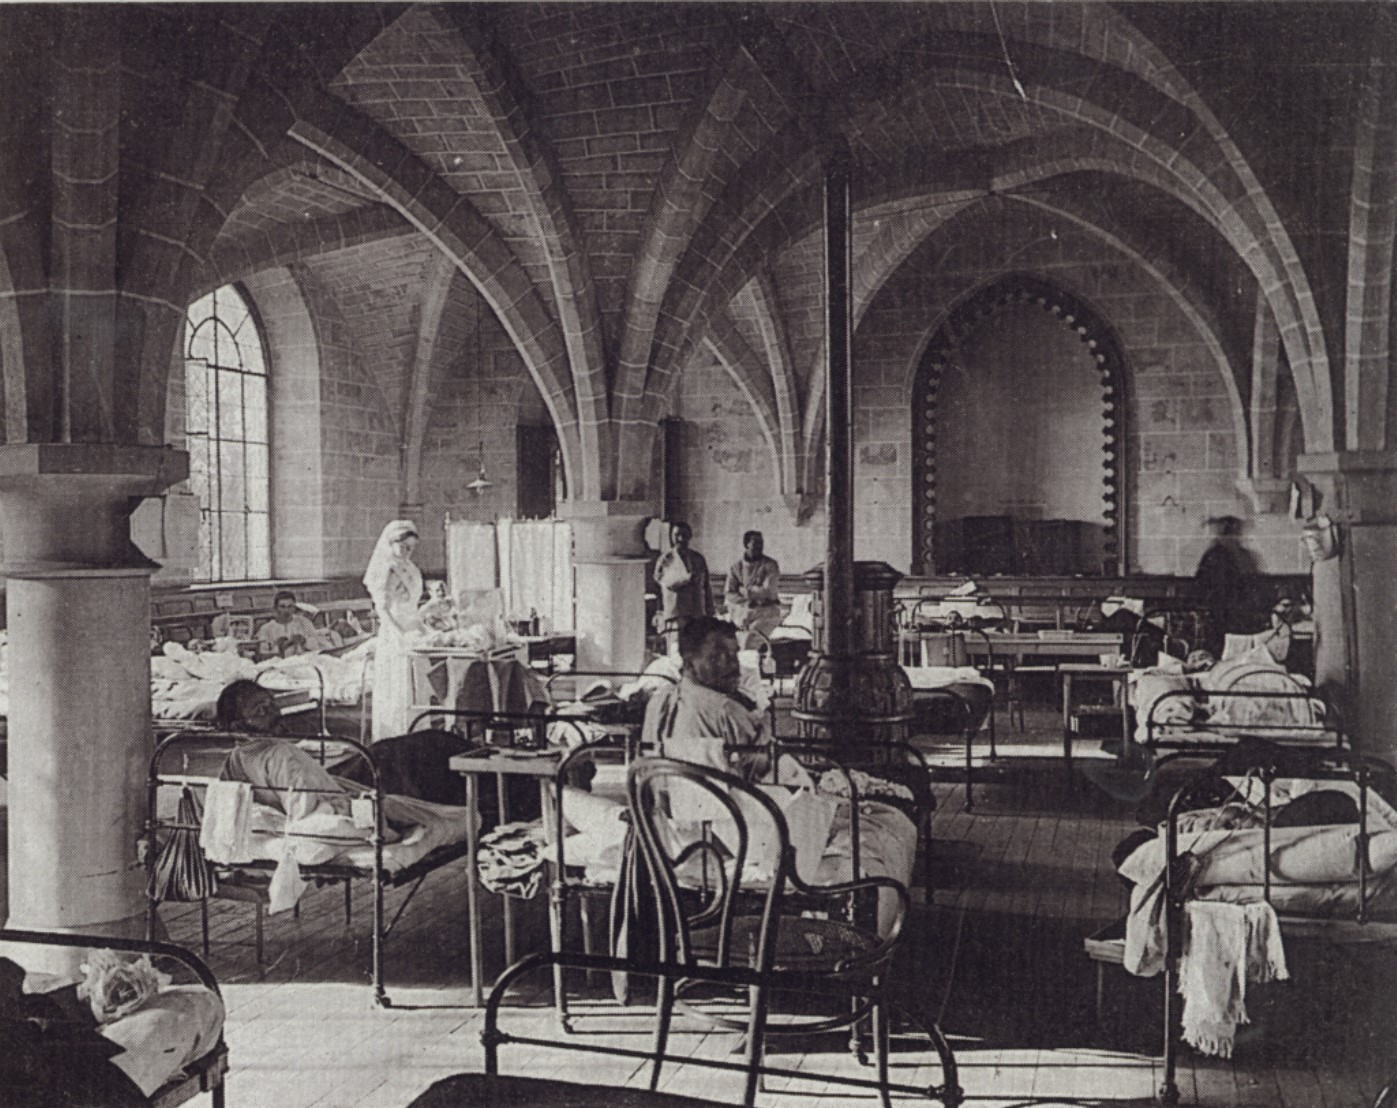 Royaumont Hospital, image kindly provided by the Imperial War Museum.